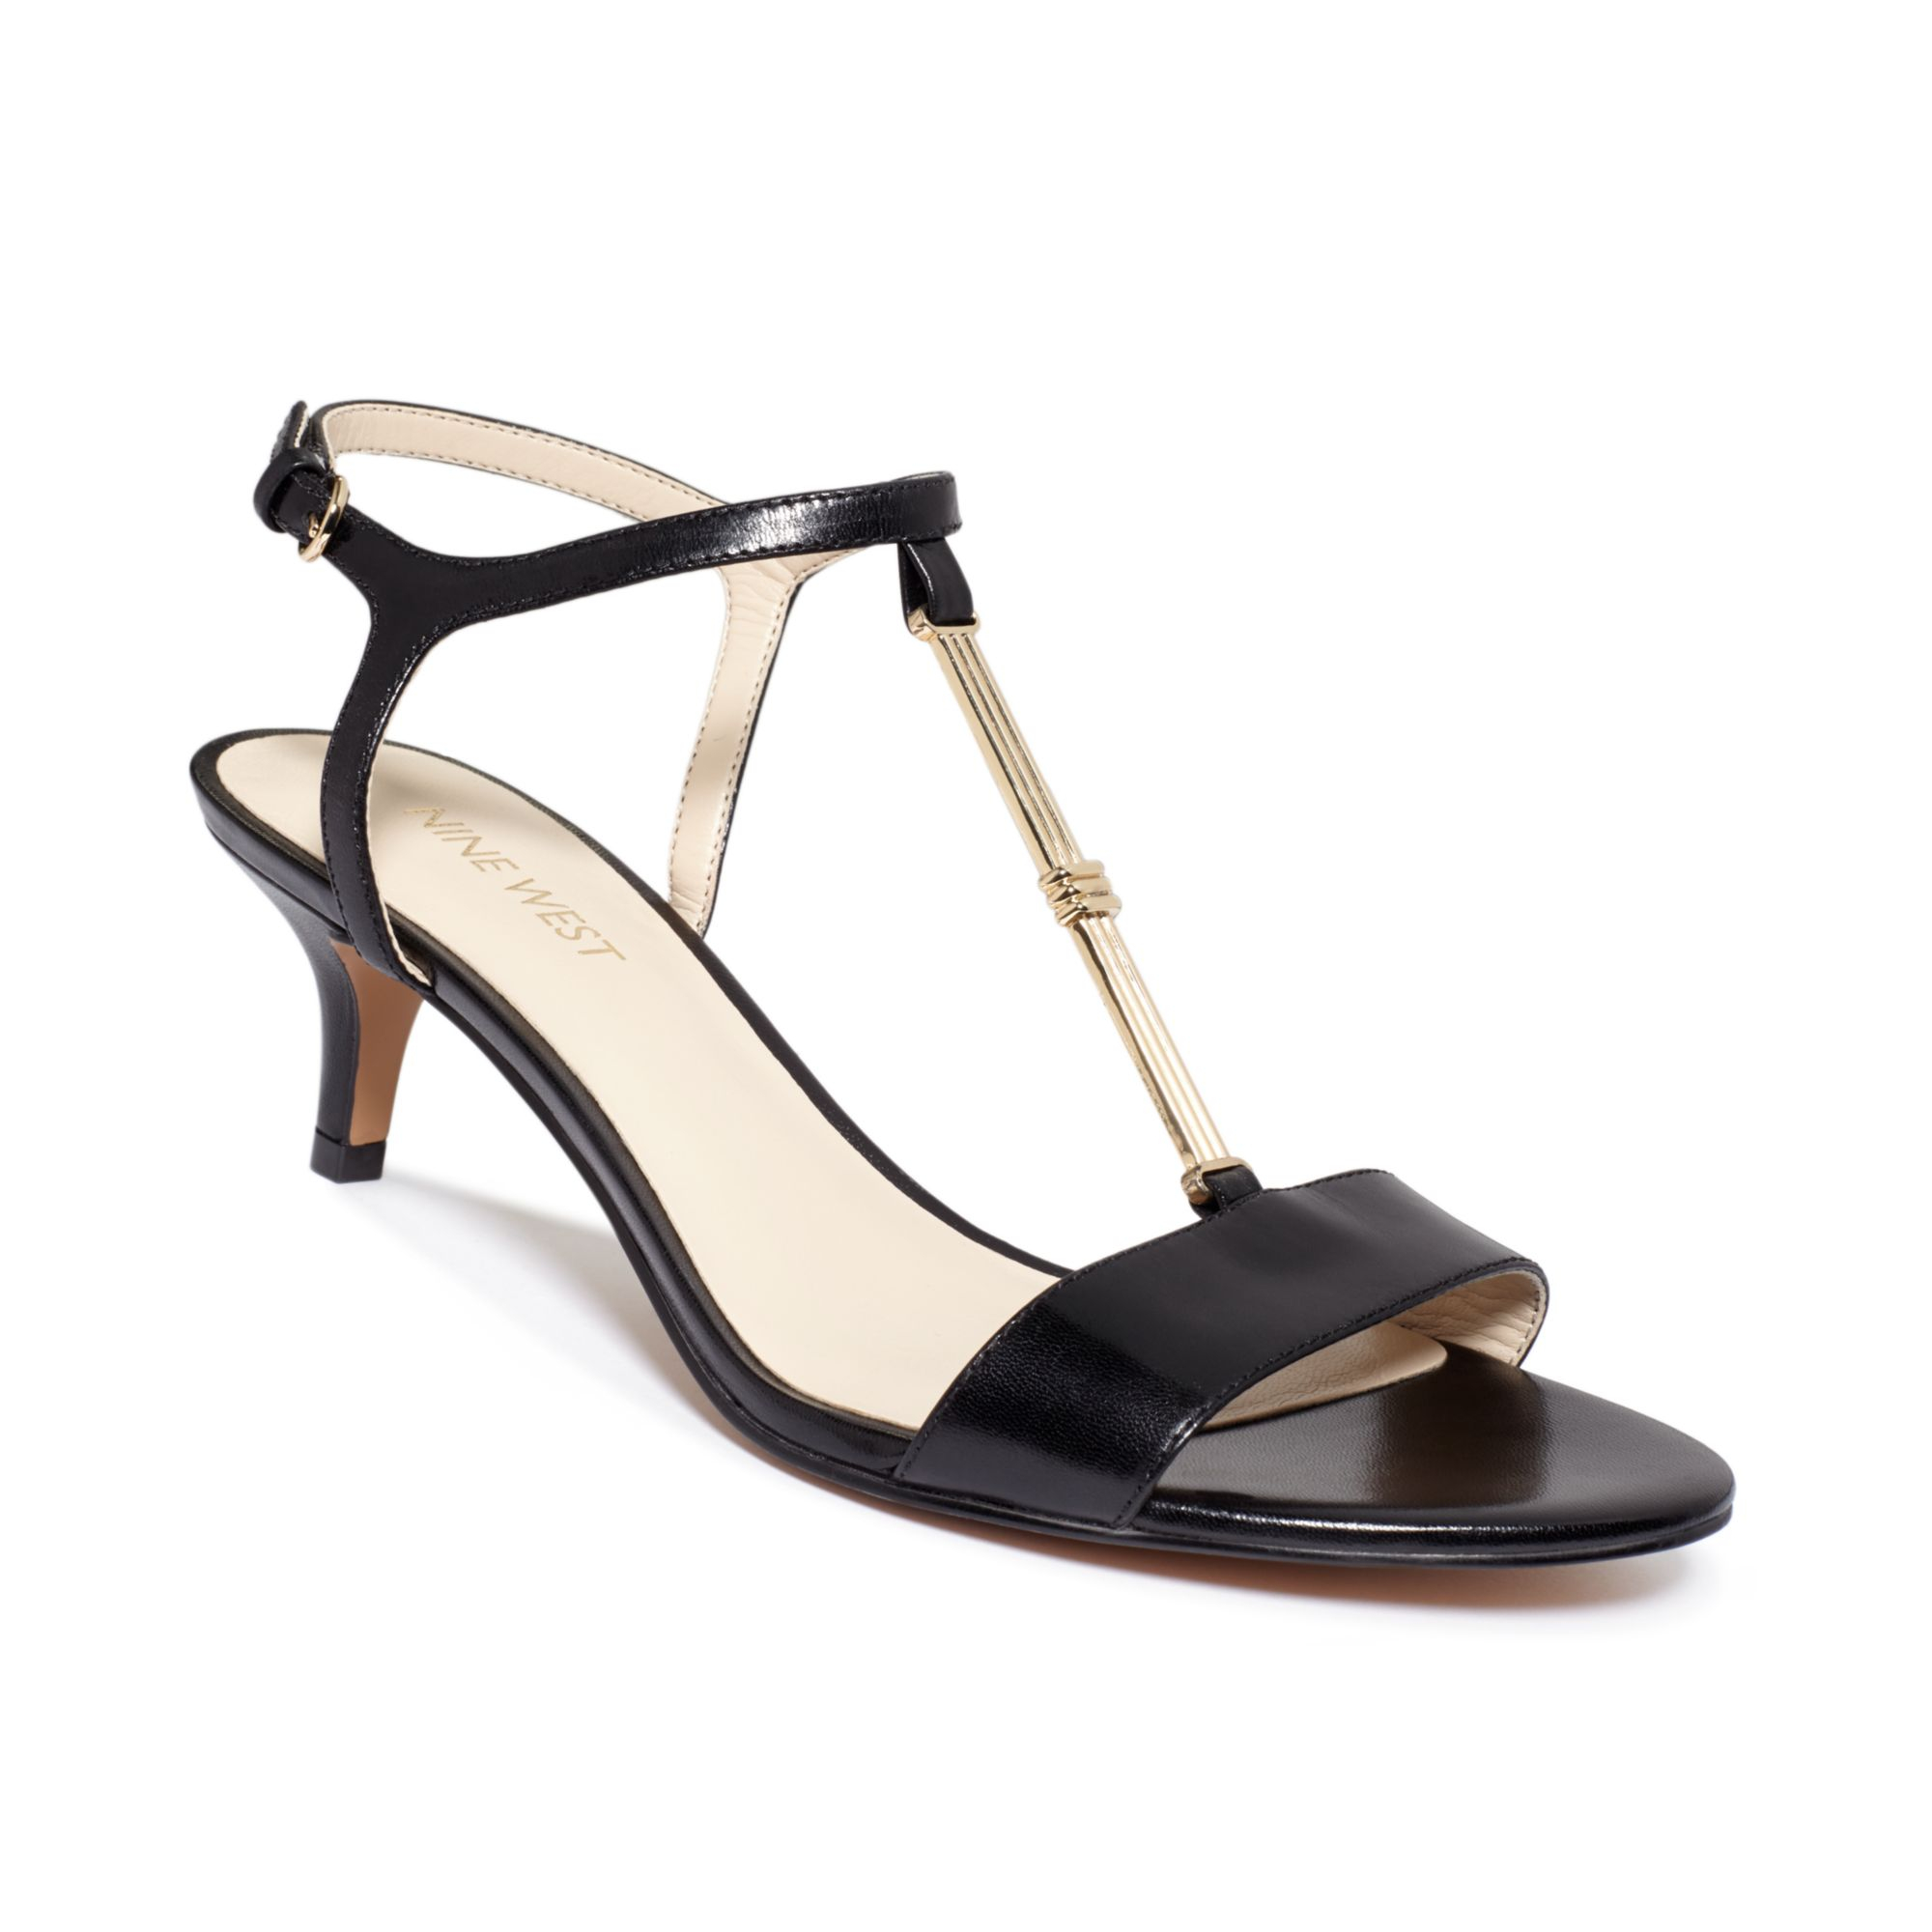 Shop black kitten heel shoes at Neiman Marcus, where you will find free shipping on the latest in fashion from top designers.